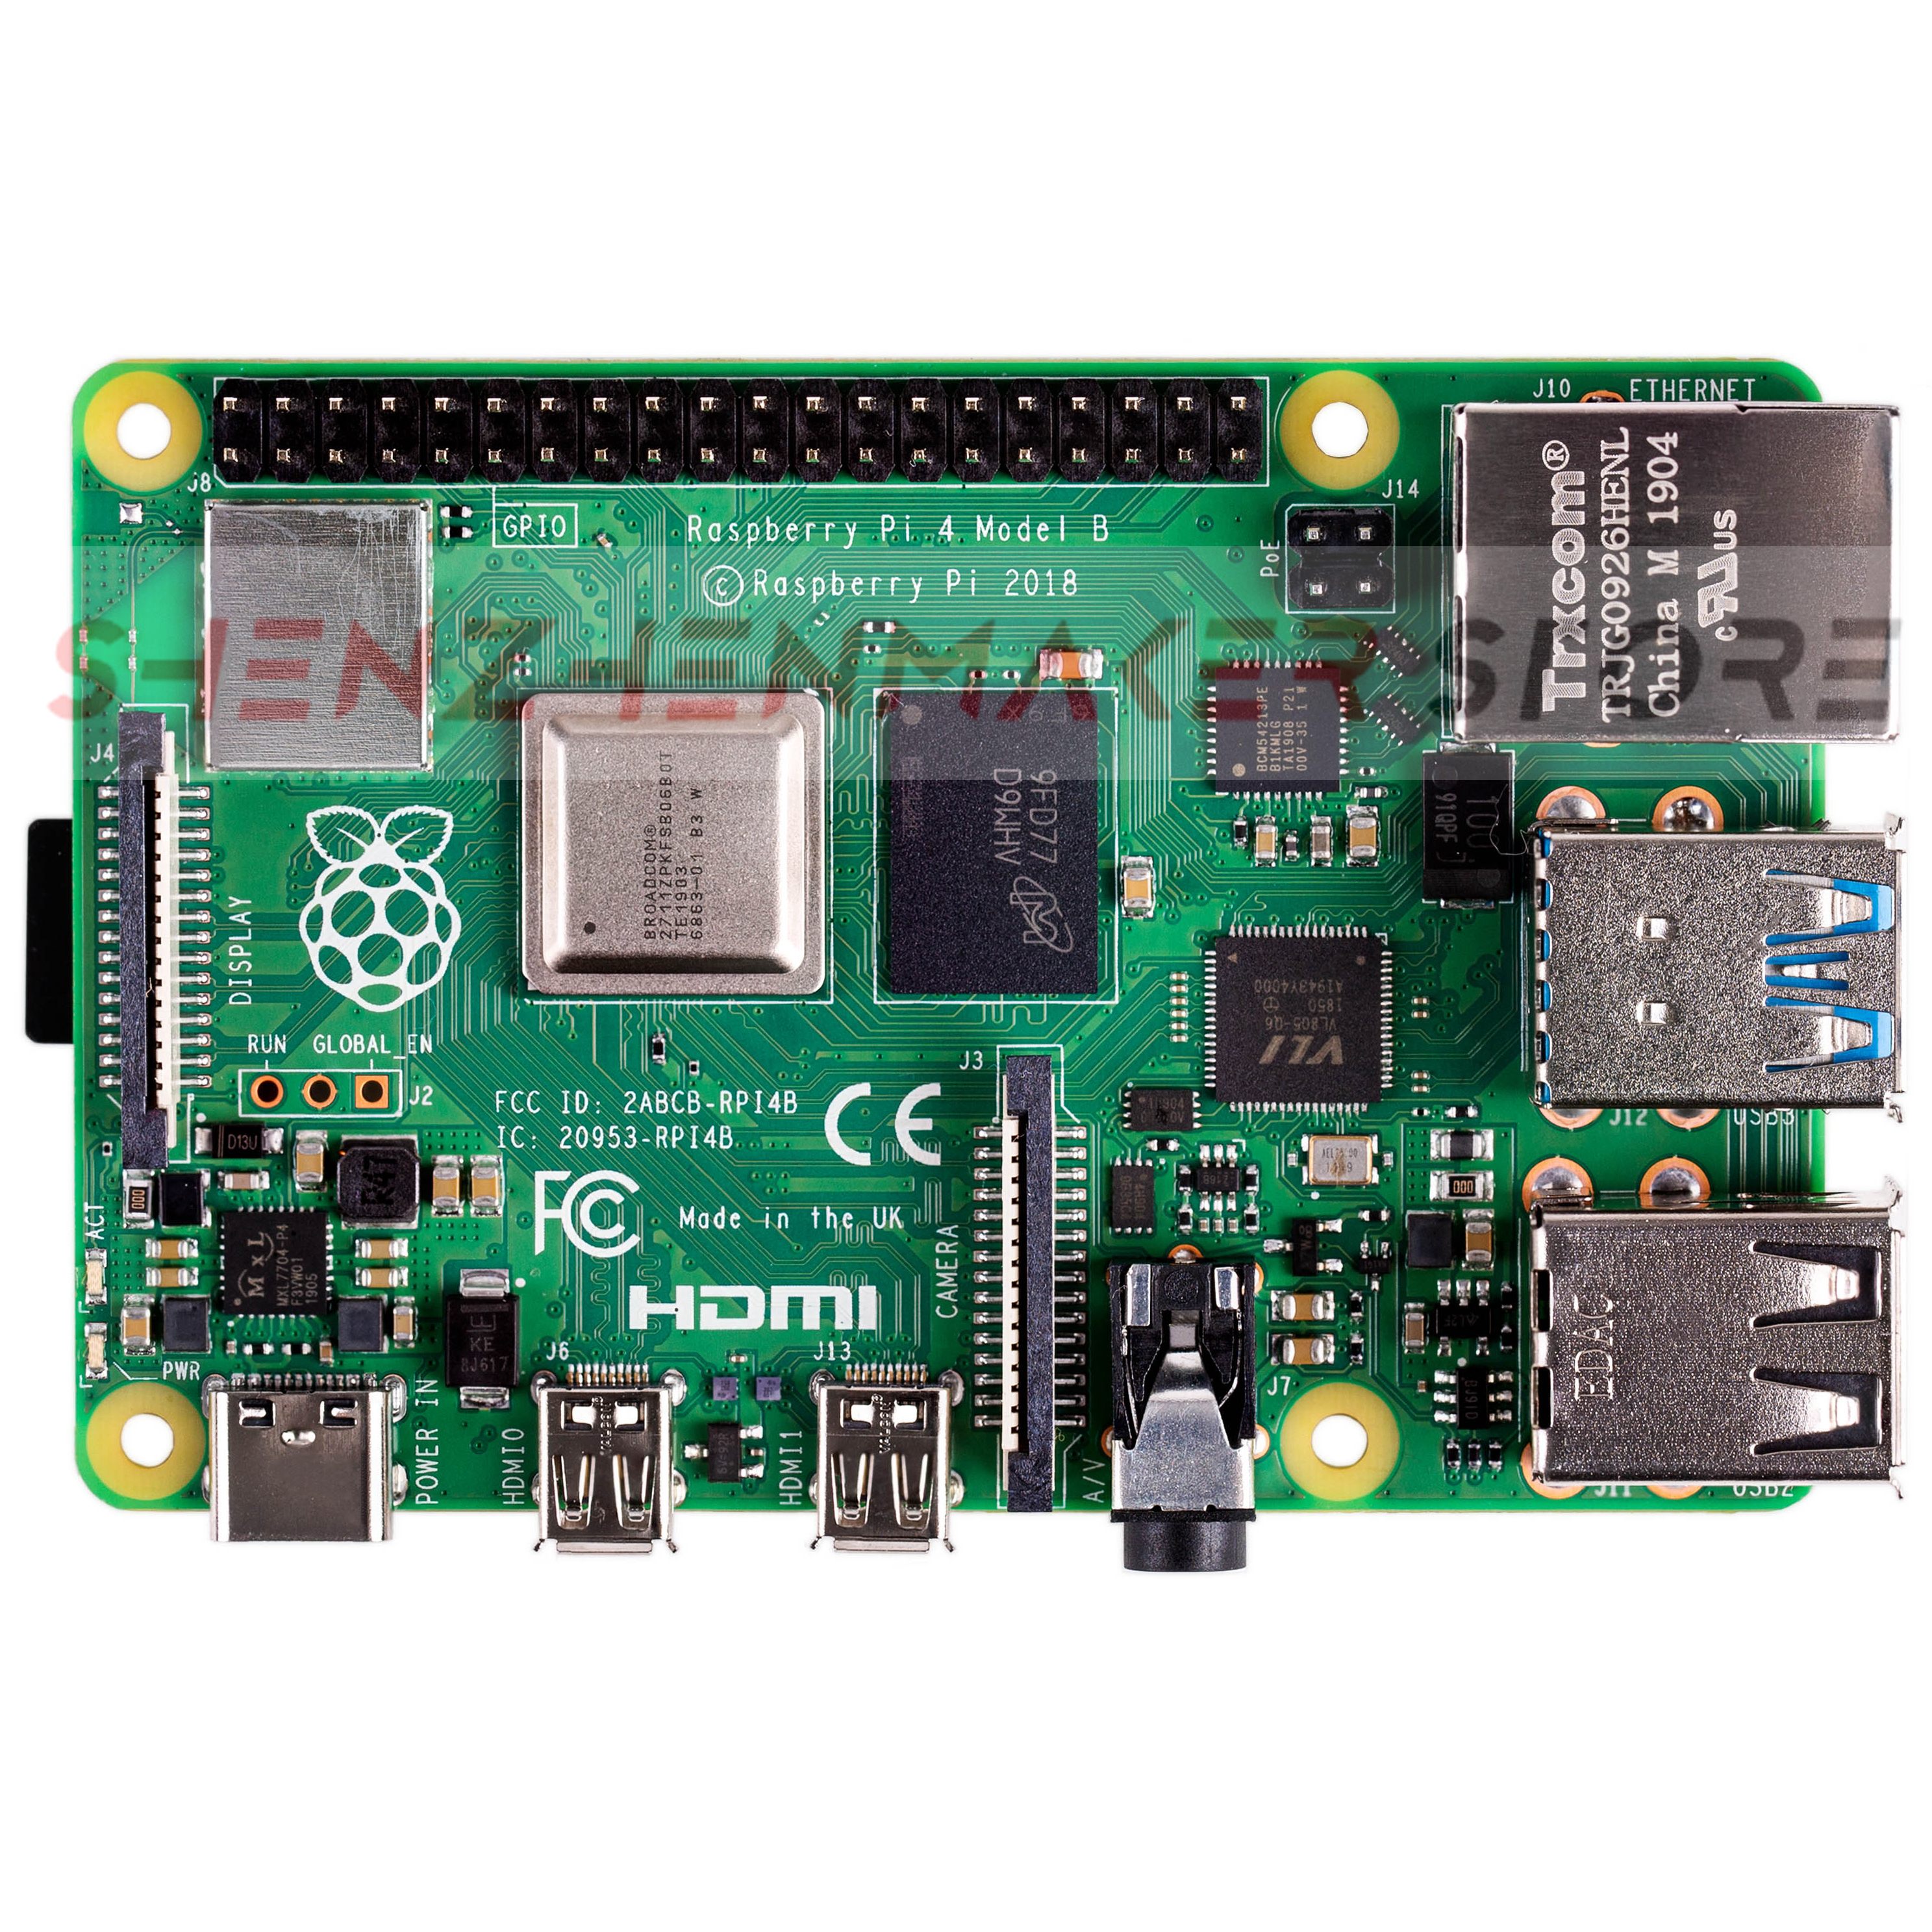 Image 2 - ShenzhenMaker Store Brand new Raspberry Pi 4 Model B 1GB 2GB 4GB RAM Type C Port Computer   IN STOCK-in 3D Printing Materials from Computer & Office